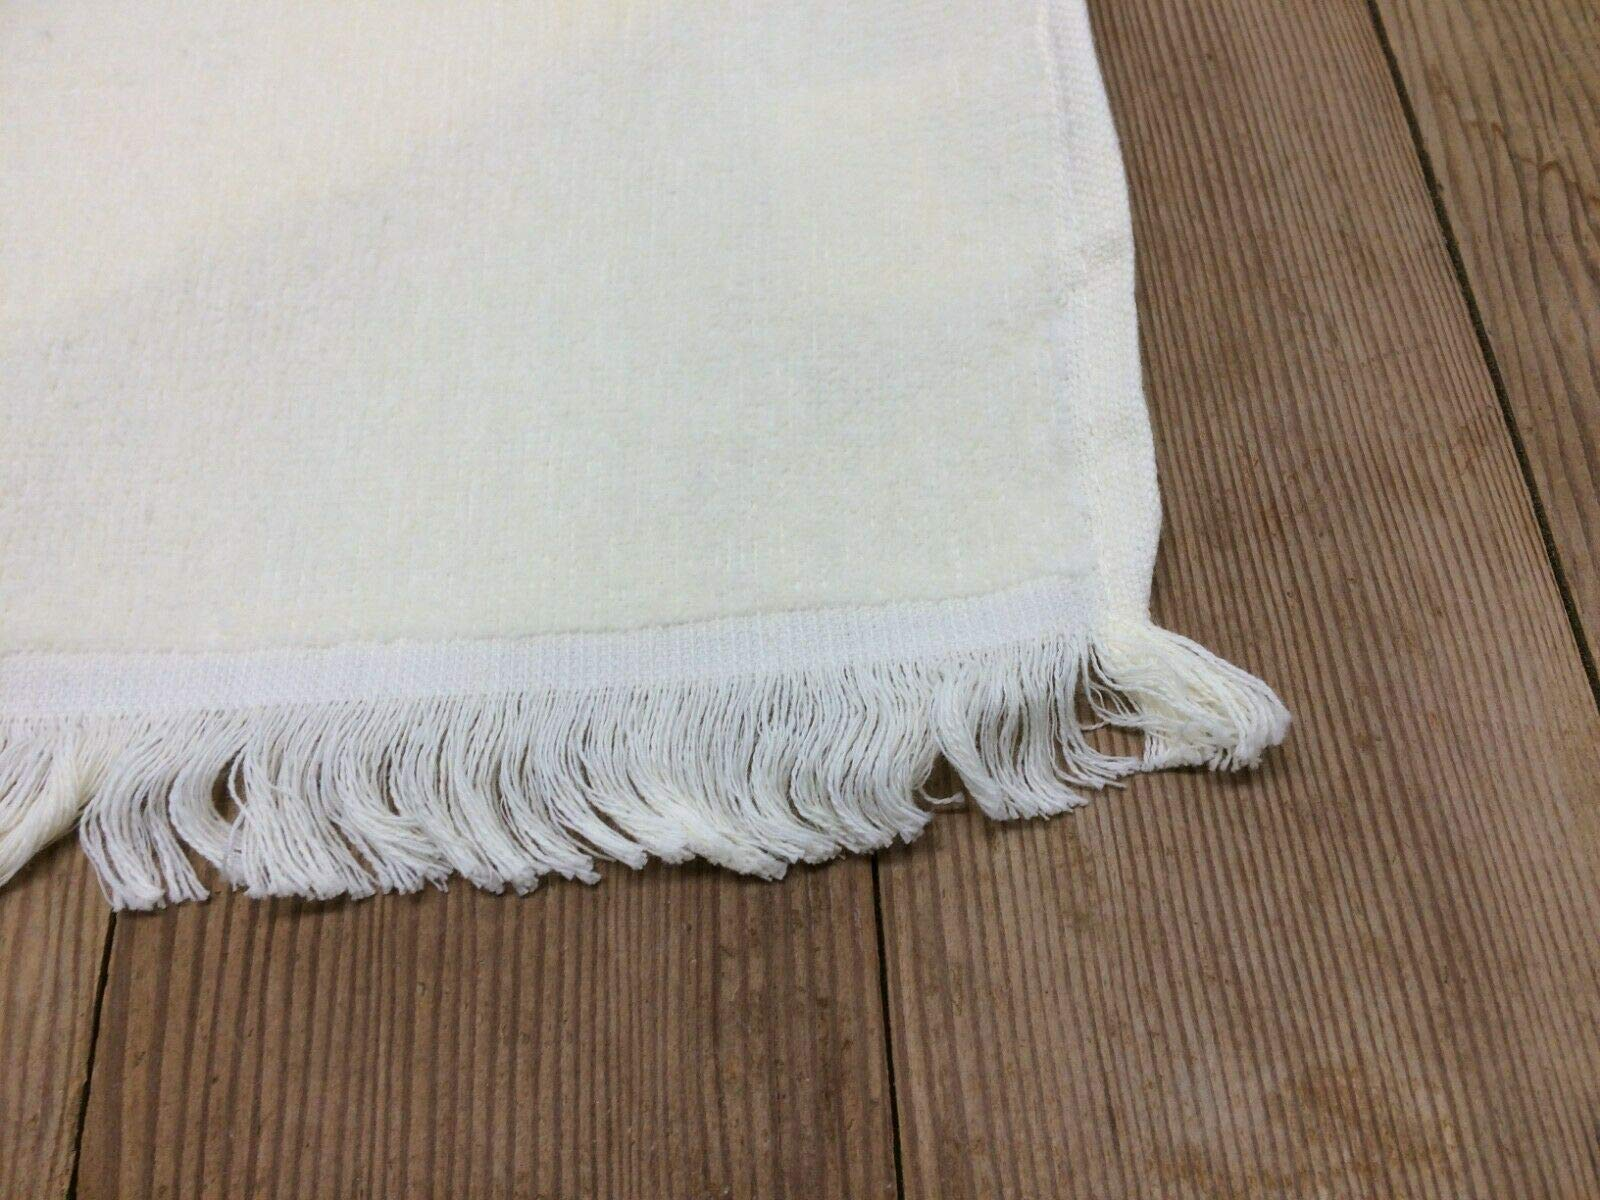 Rima 12 New White Finger TIP Towels Fringe END 11x18 New Item 100% Cotton